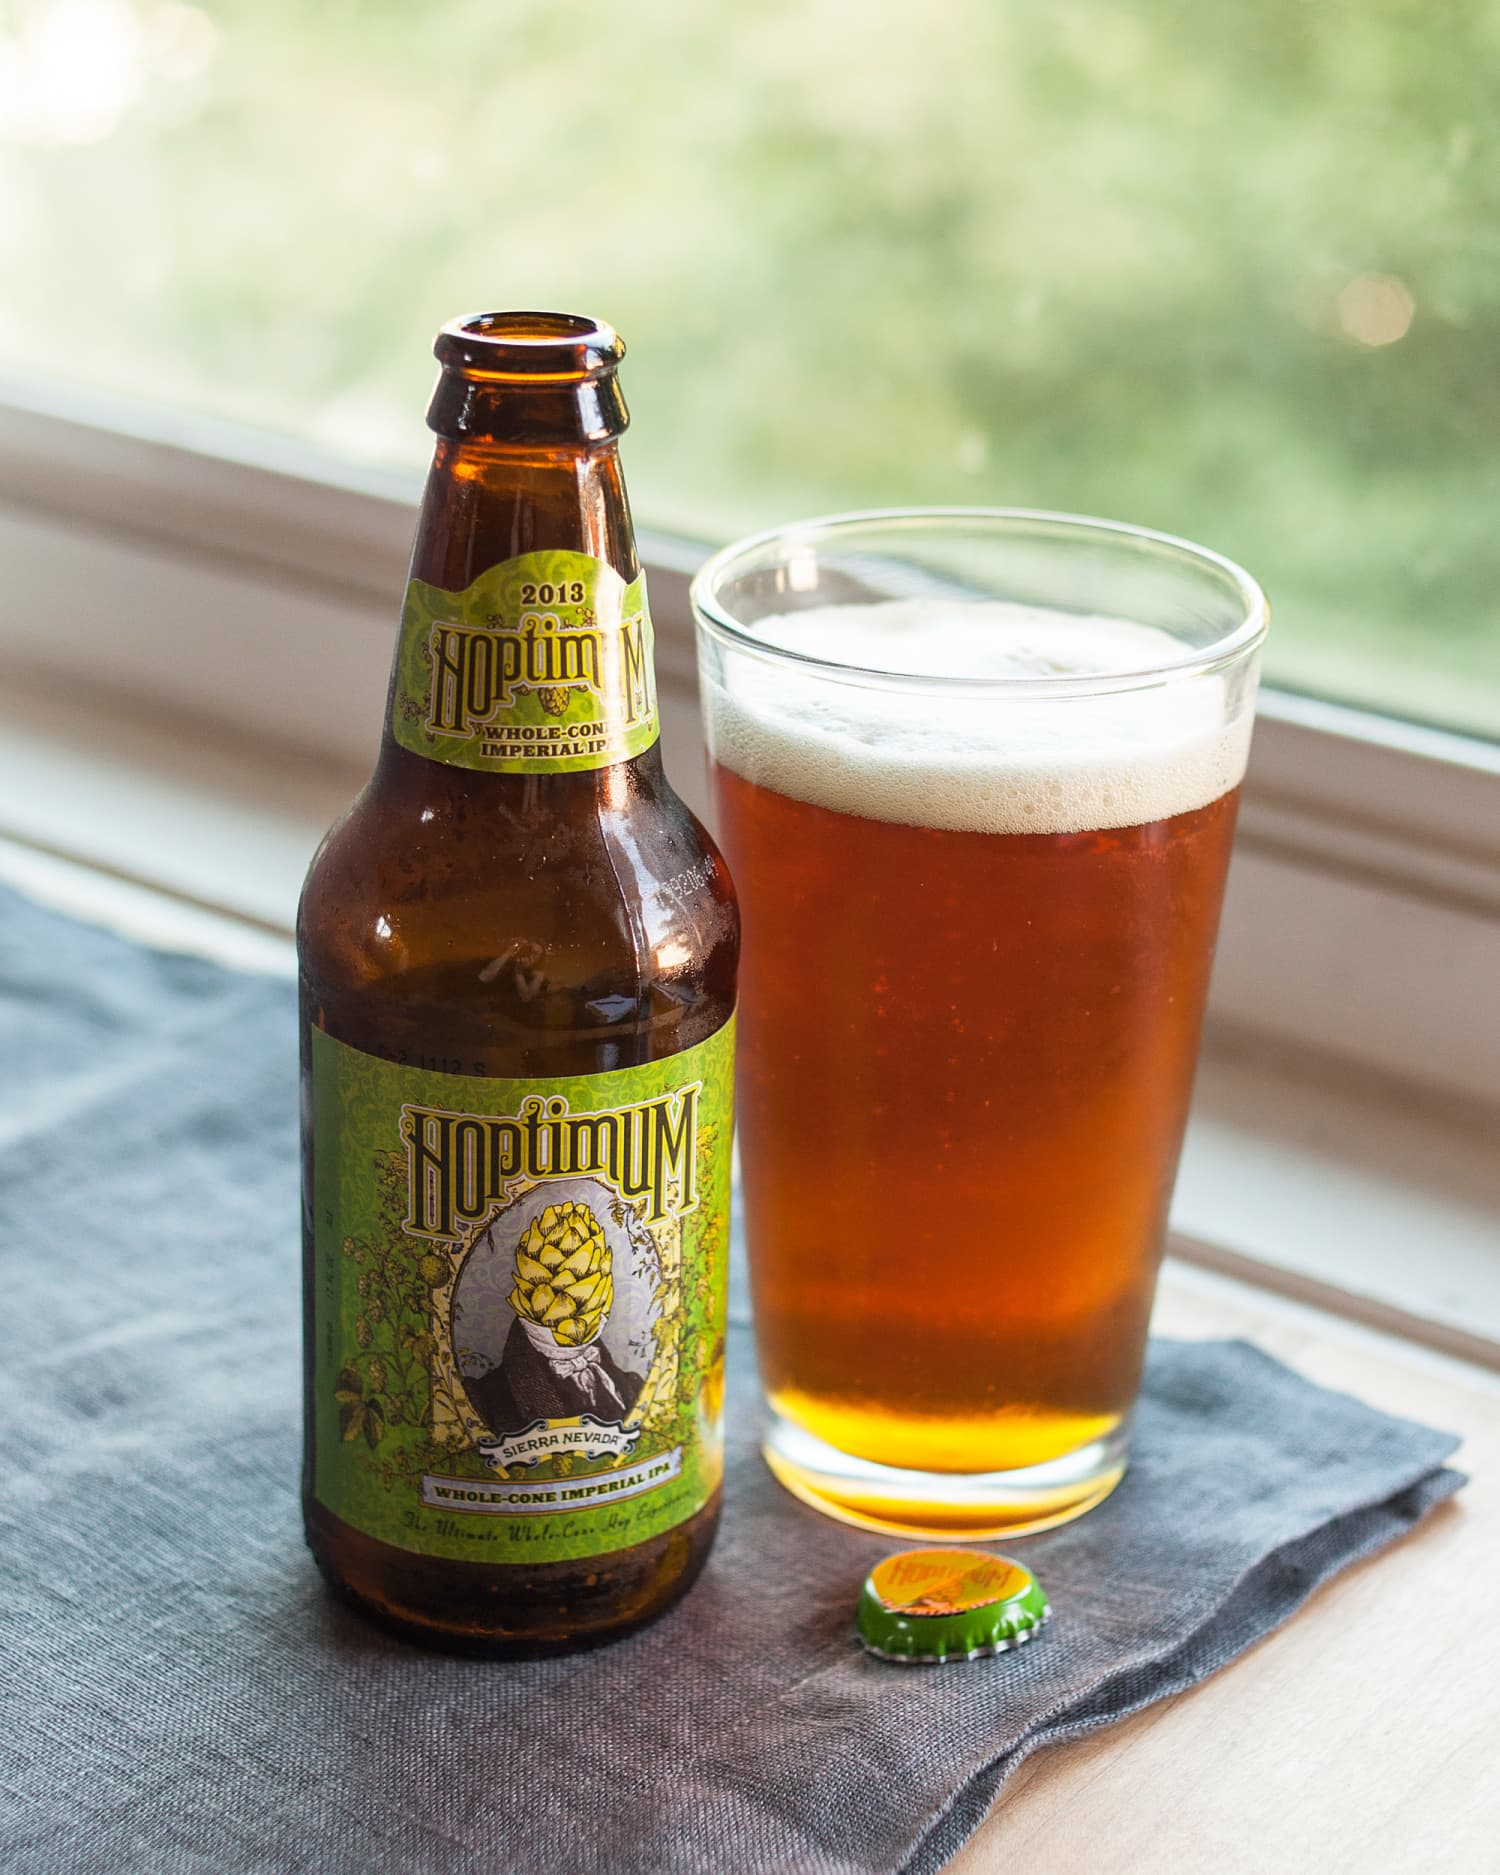 Beer Review: Hoptimum Imperial IPA from Sierra Nevada Brewing Co.